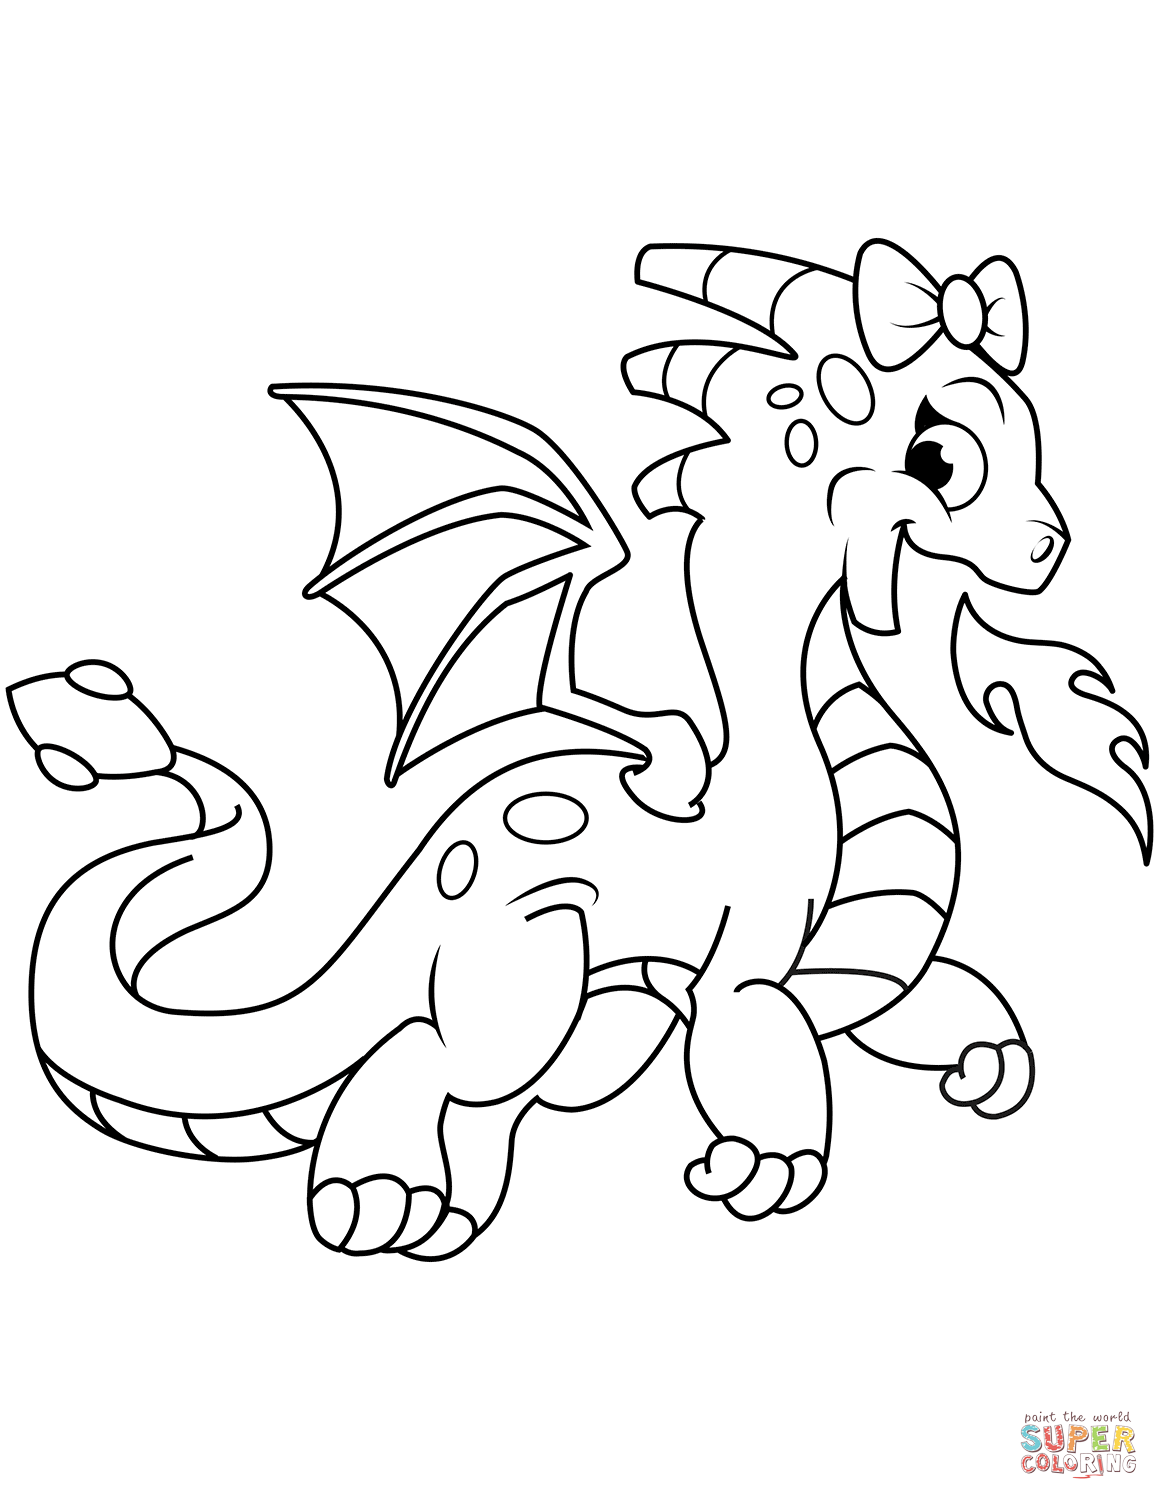 Cute Dragon Breathing Fire Coloring Page